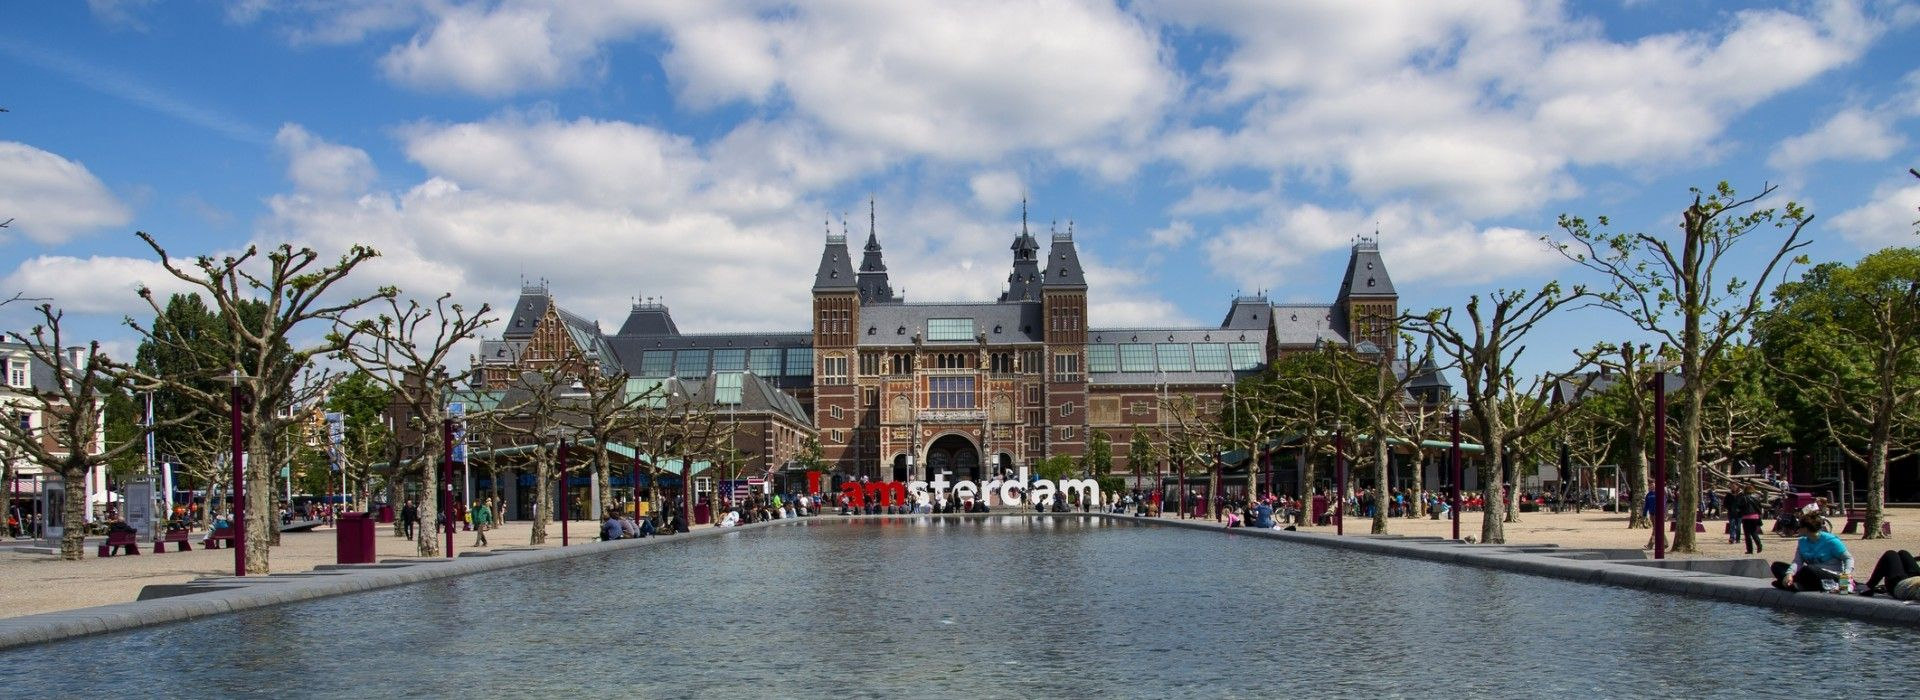 The Rijksmuseum, one of Amsterdam's grandest and most popular museums